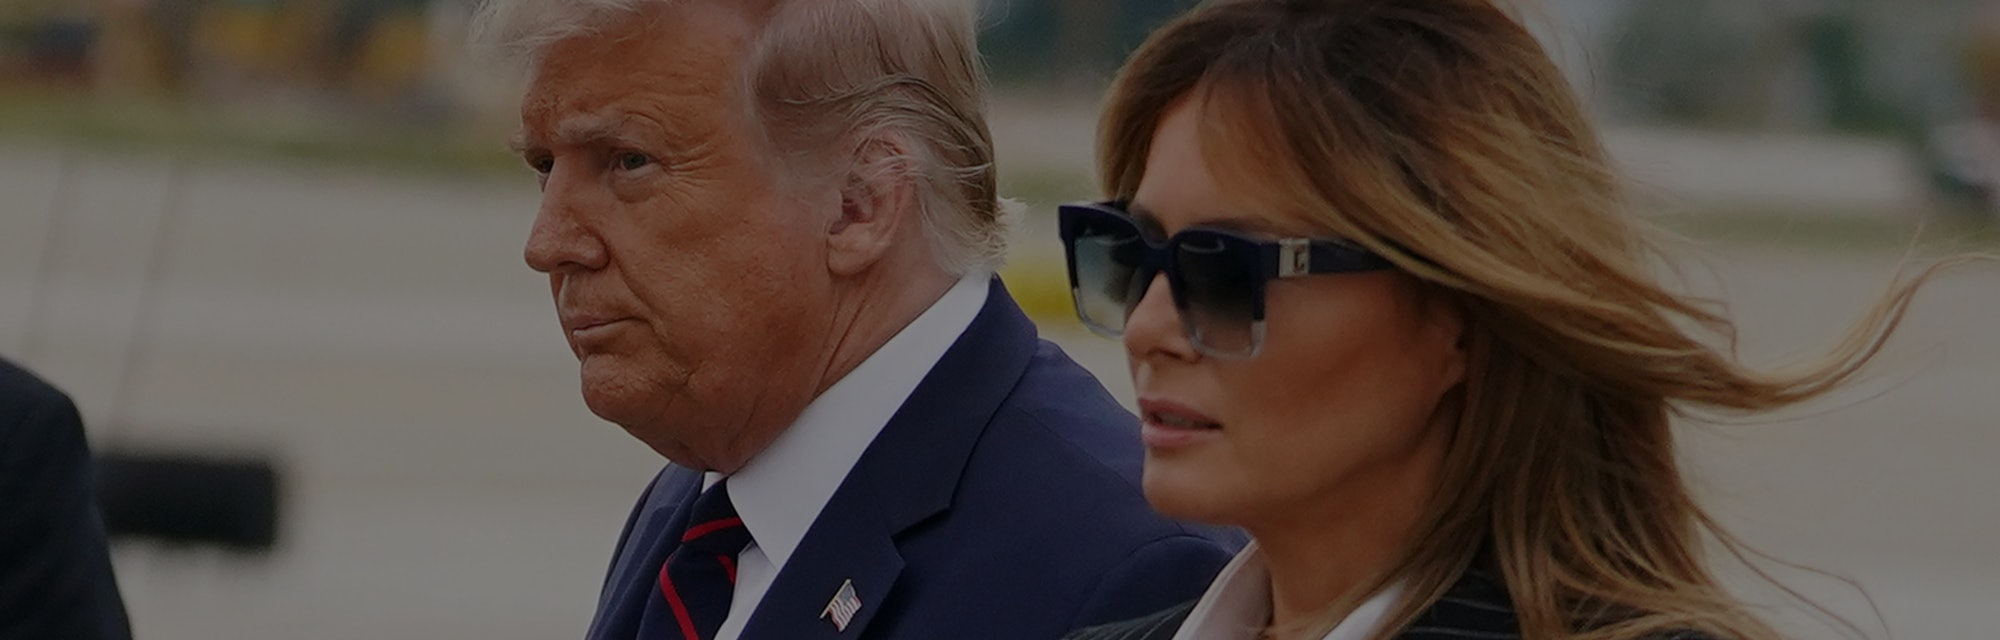 President Trump and the First Lady.